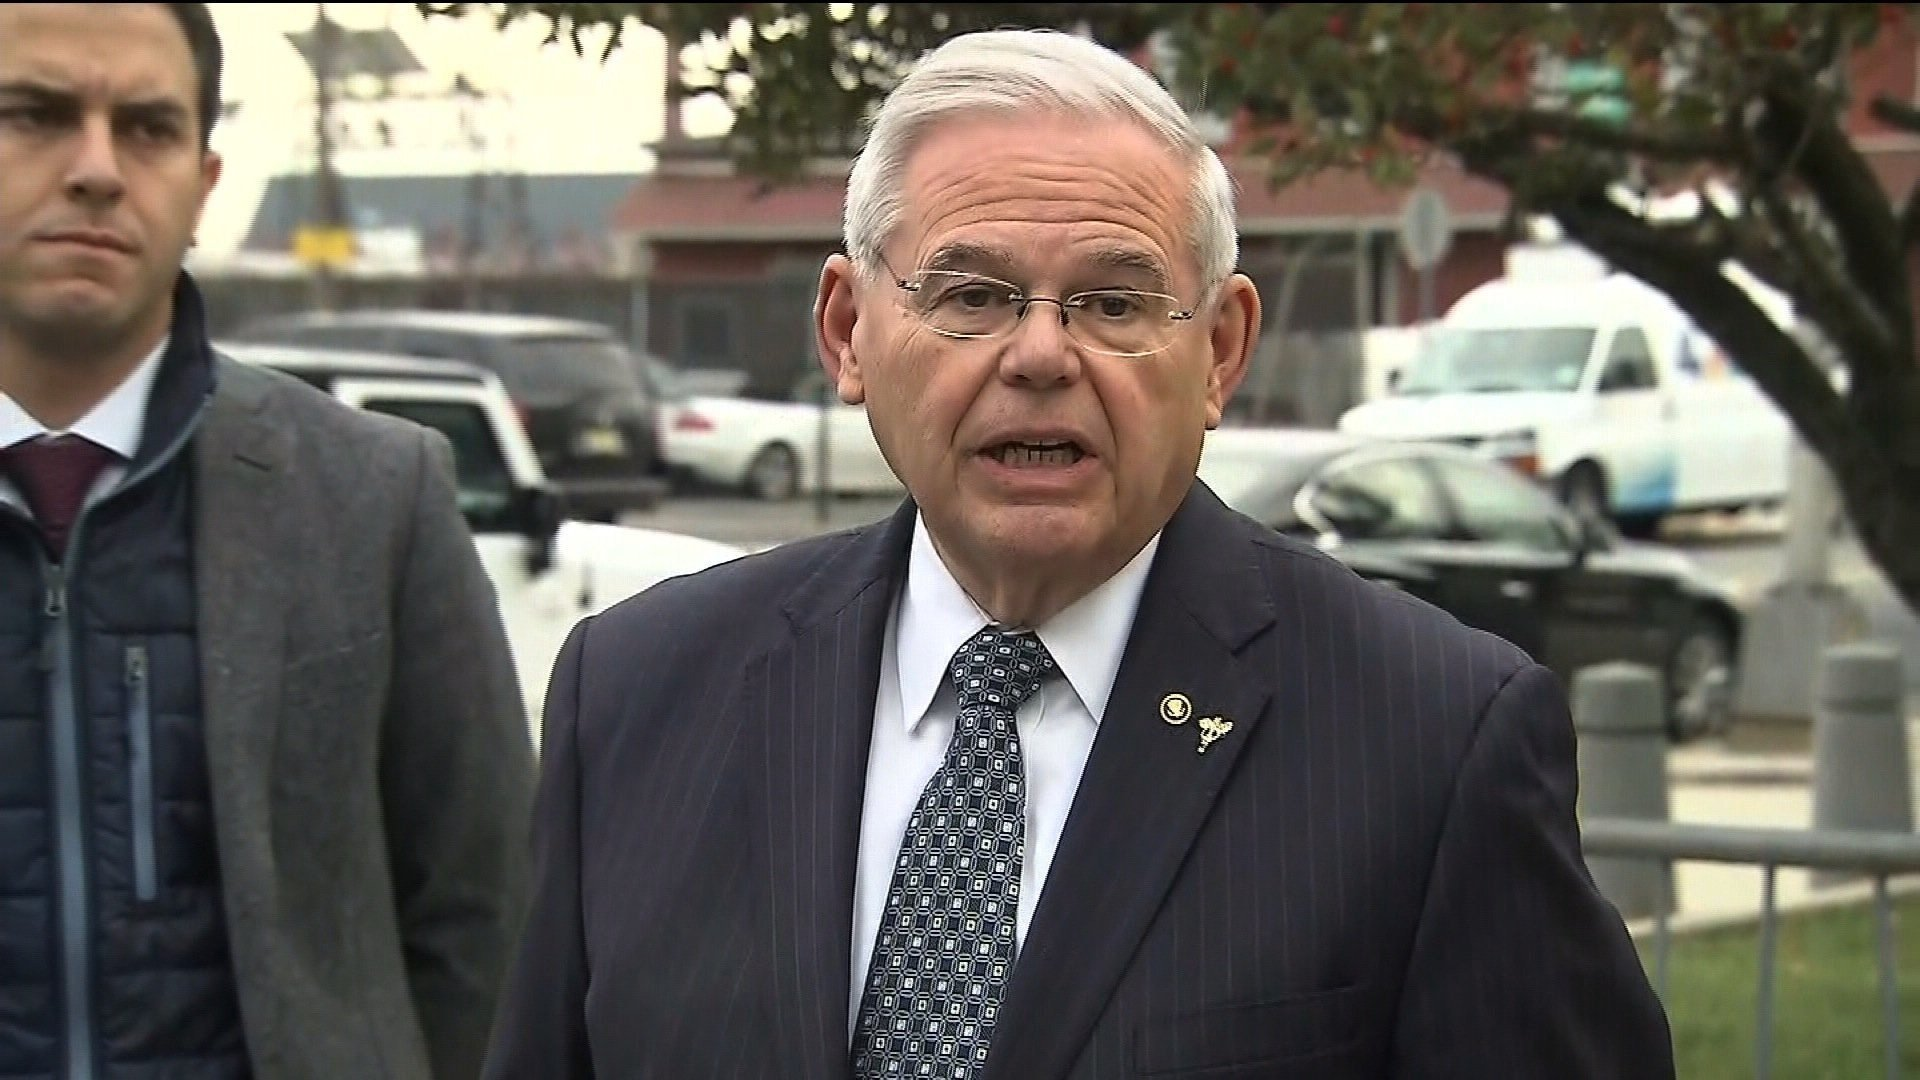 Government won't retry Menendez on corruption charges